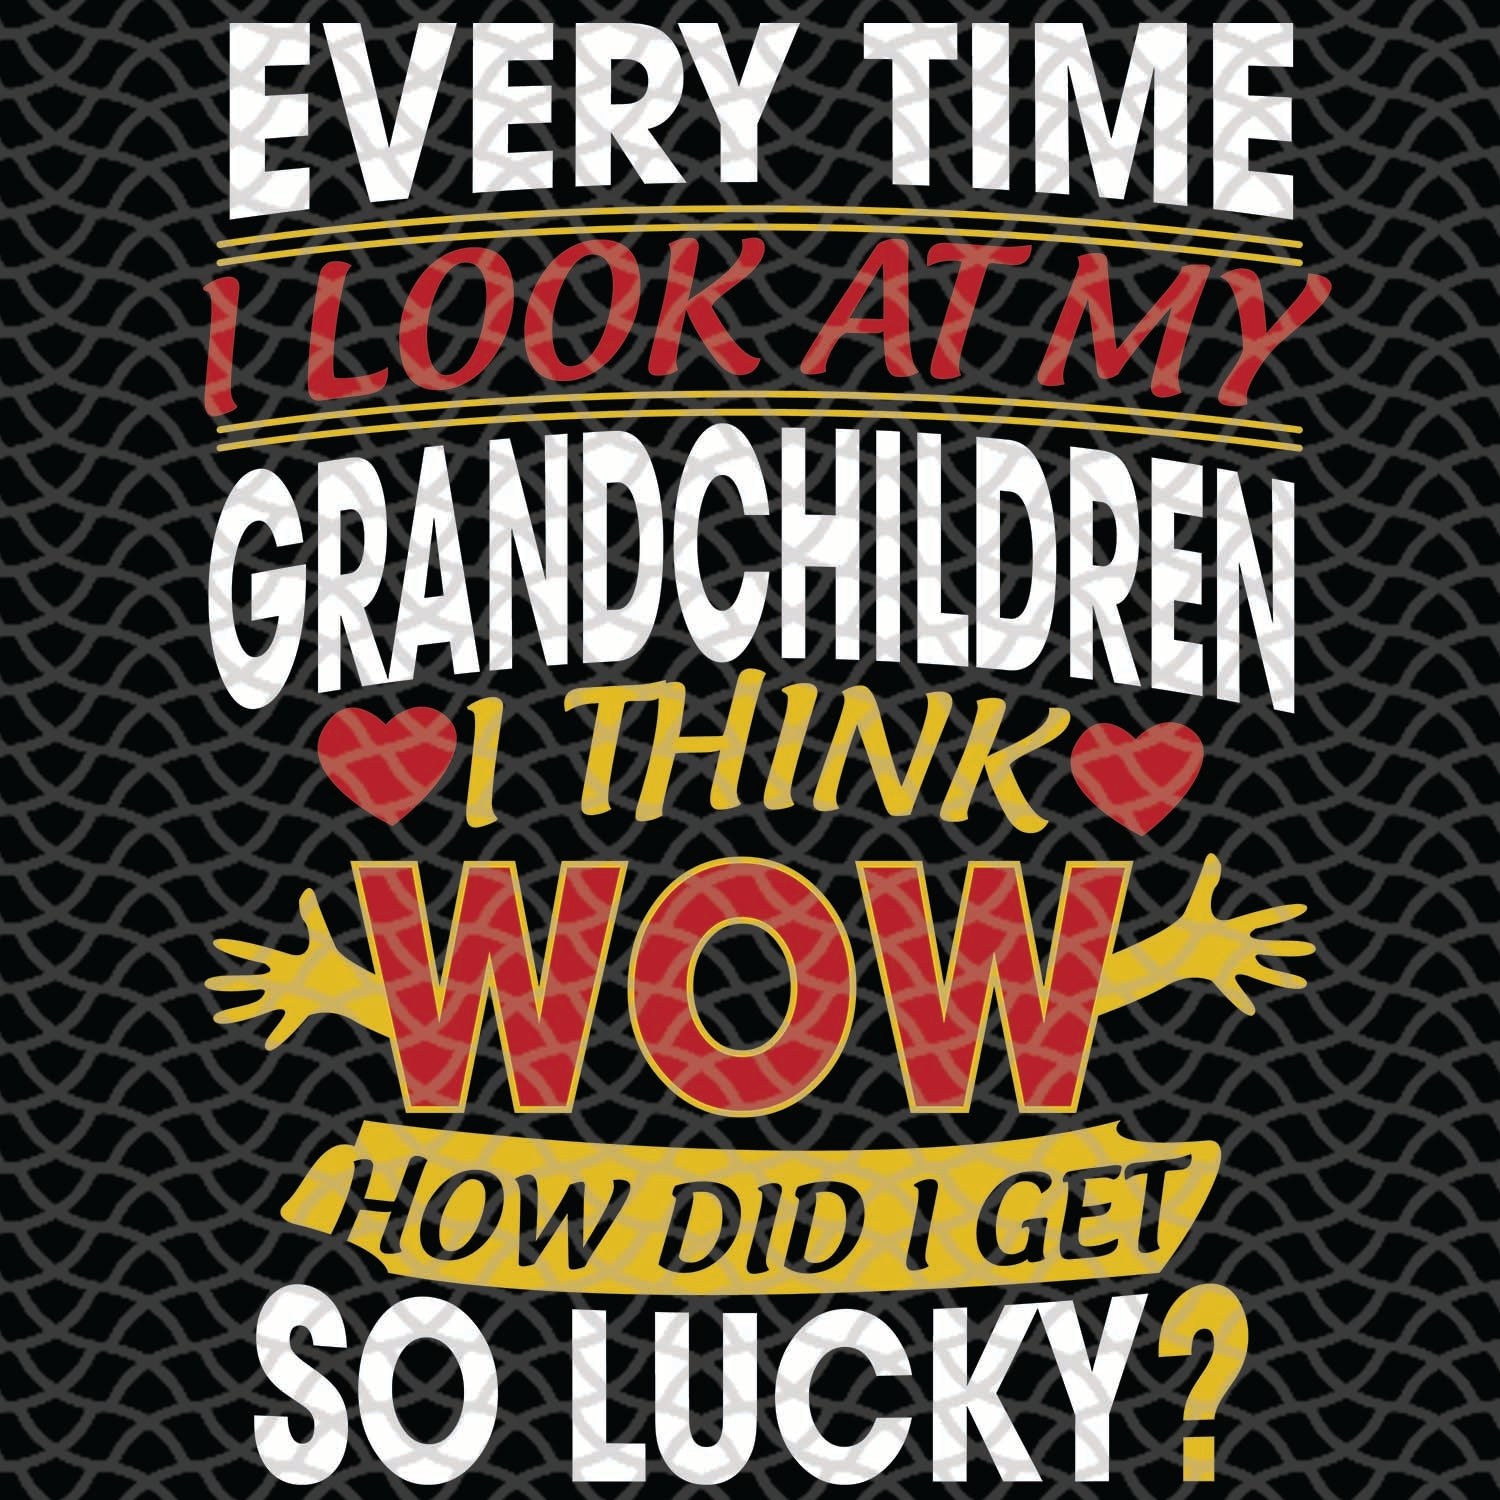 Every Time I Look At My Grandchildren Svg, Grandchildren Svg, Mothers Day Svg, Grandparents Svg, Fathers Day Svg, Grandpa Svg, Grandma Svg, Gift For Grandparents, Files For Silhouette, Files For Cricut, SVG, DXF, EPS, PNG, Instant Download